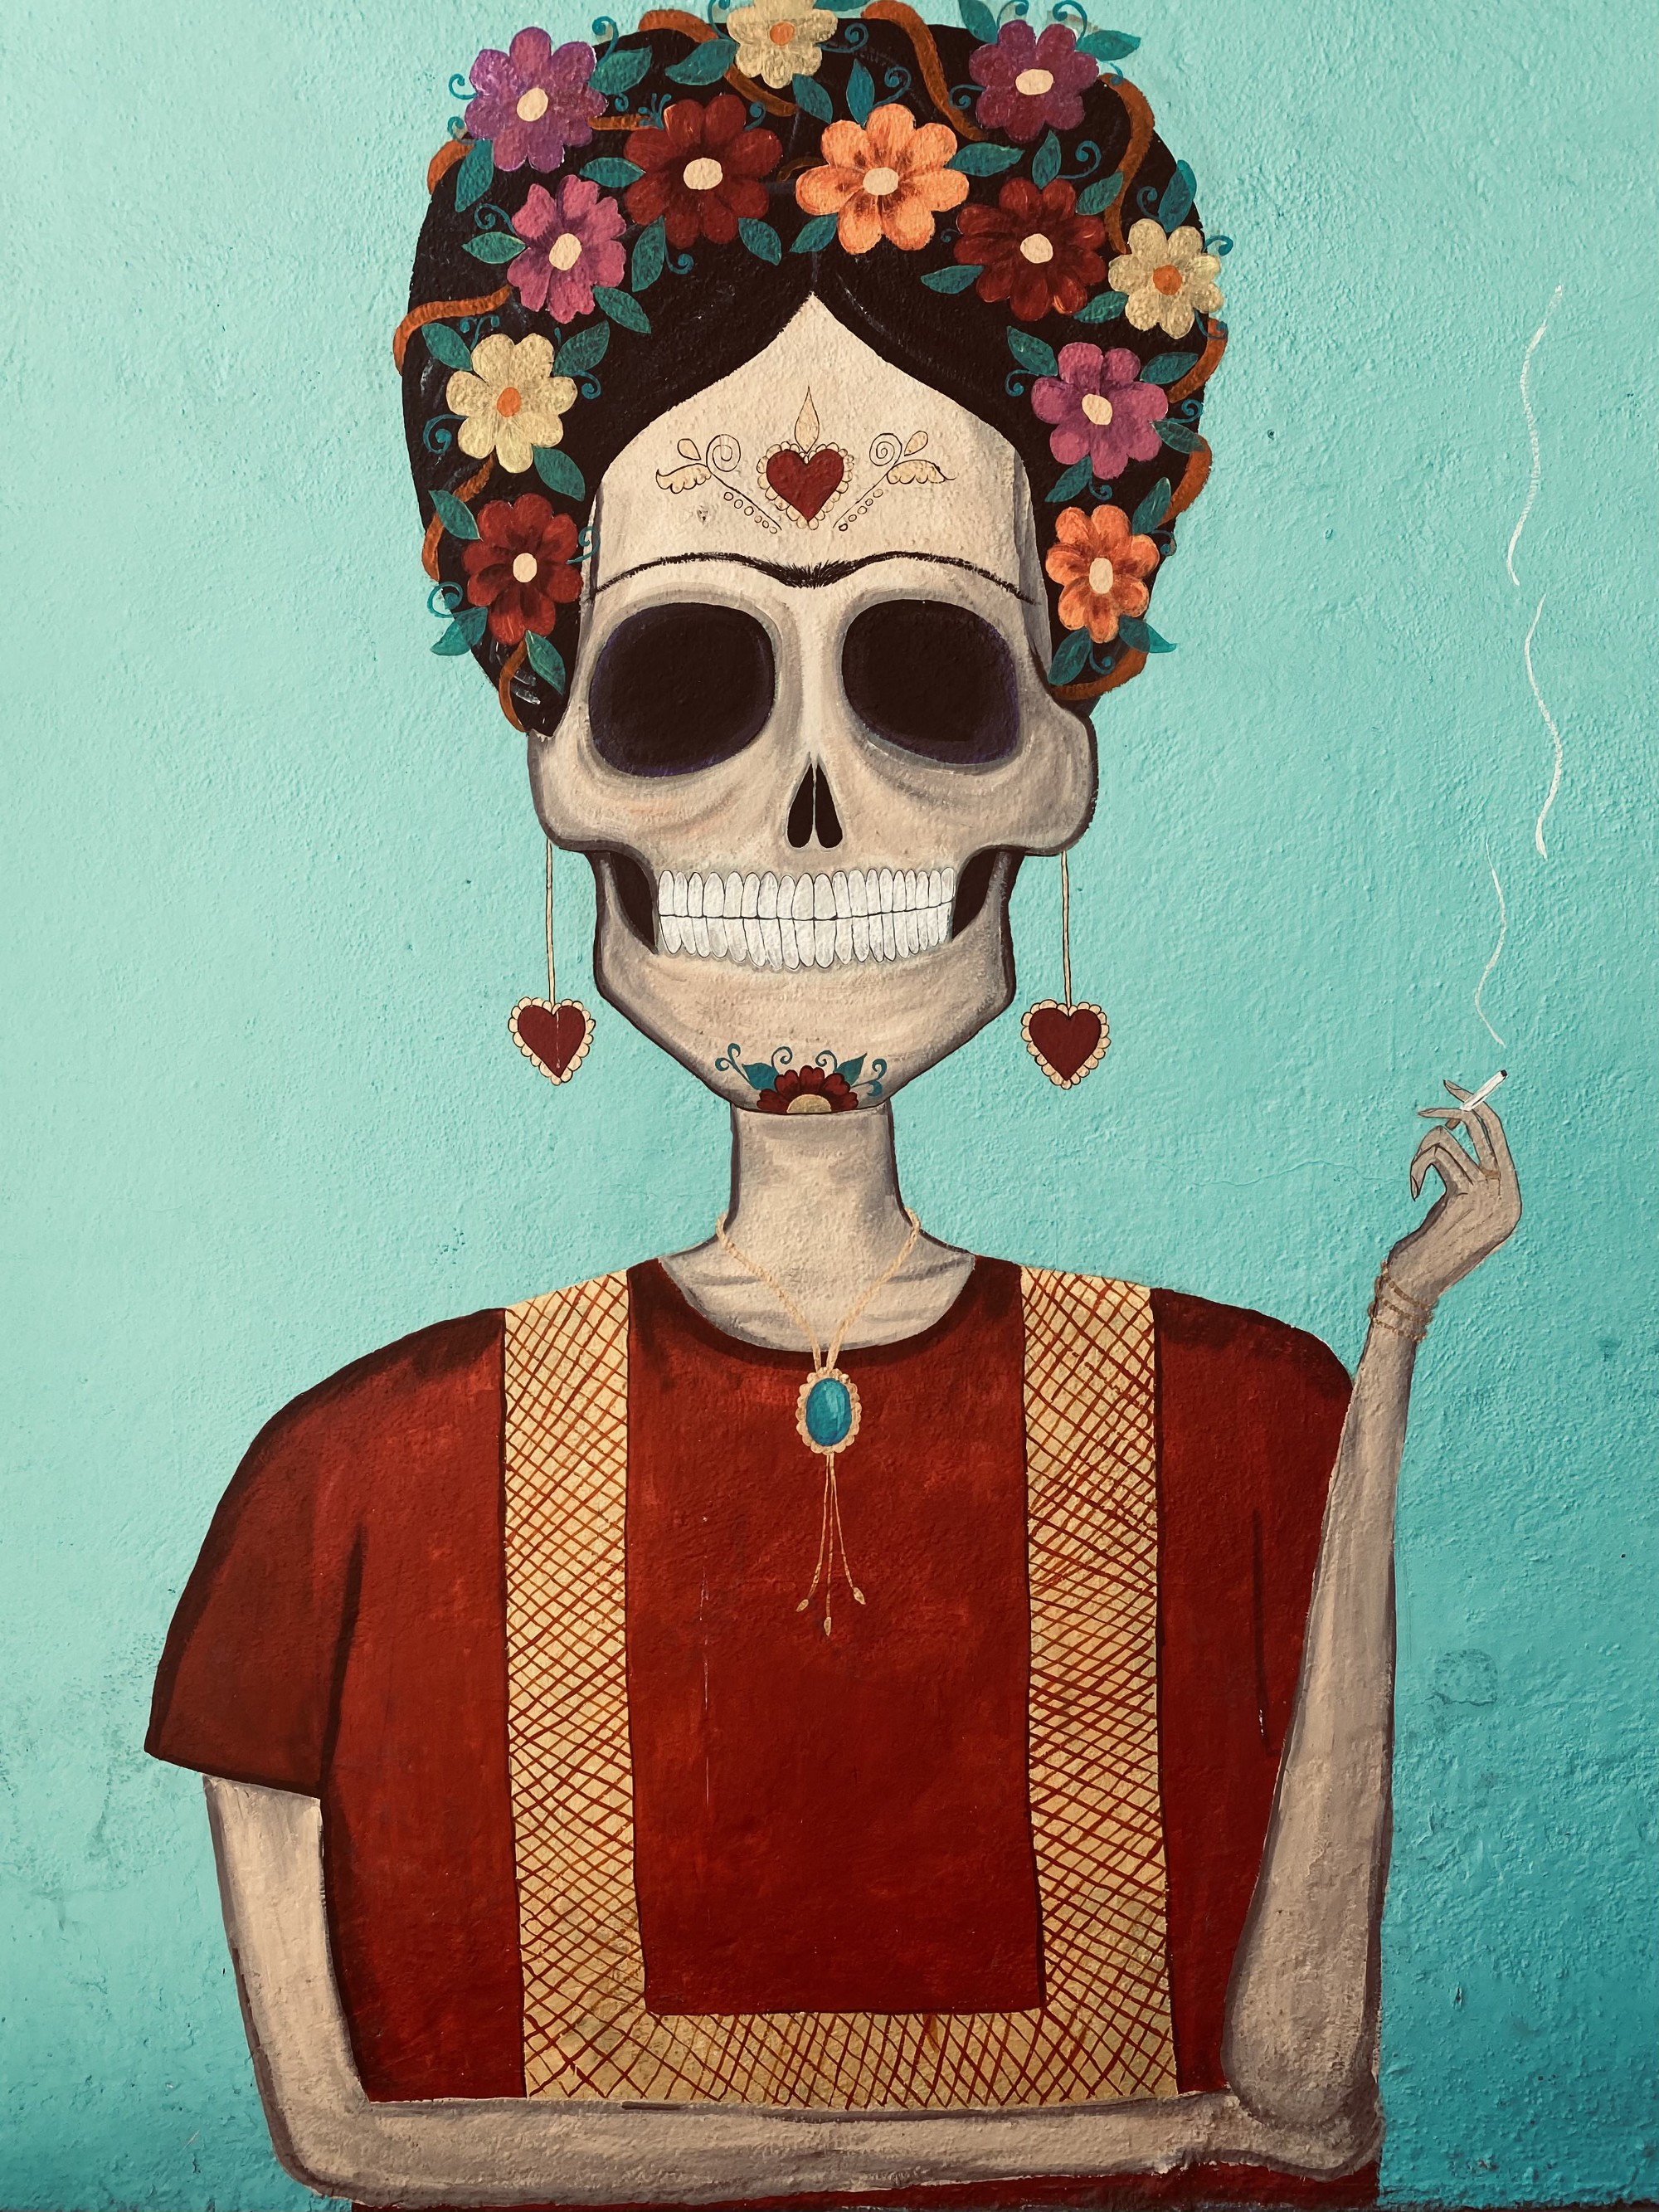 A mural on a blue wall. The mural depicts a sugar skull — a female-appearing skeleton covered in flowers and hearts. She is smoking a cigarette and grinning. Her unibrow suggests that she is Frida Khalo, or at least an homage to her.